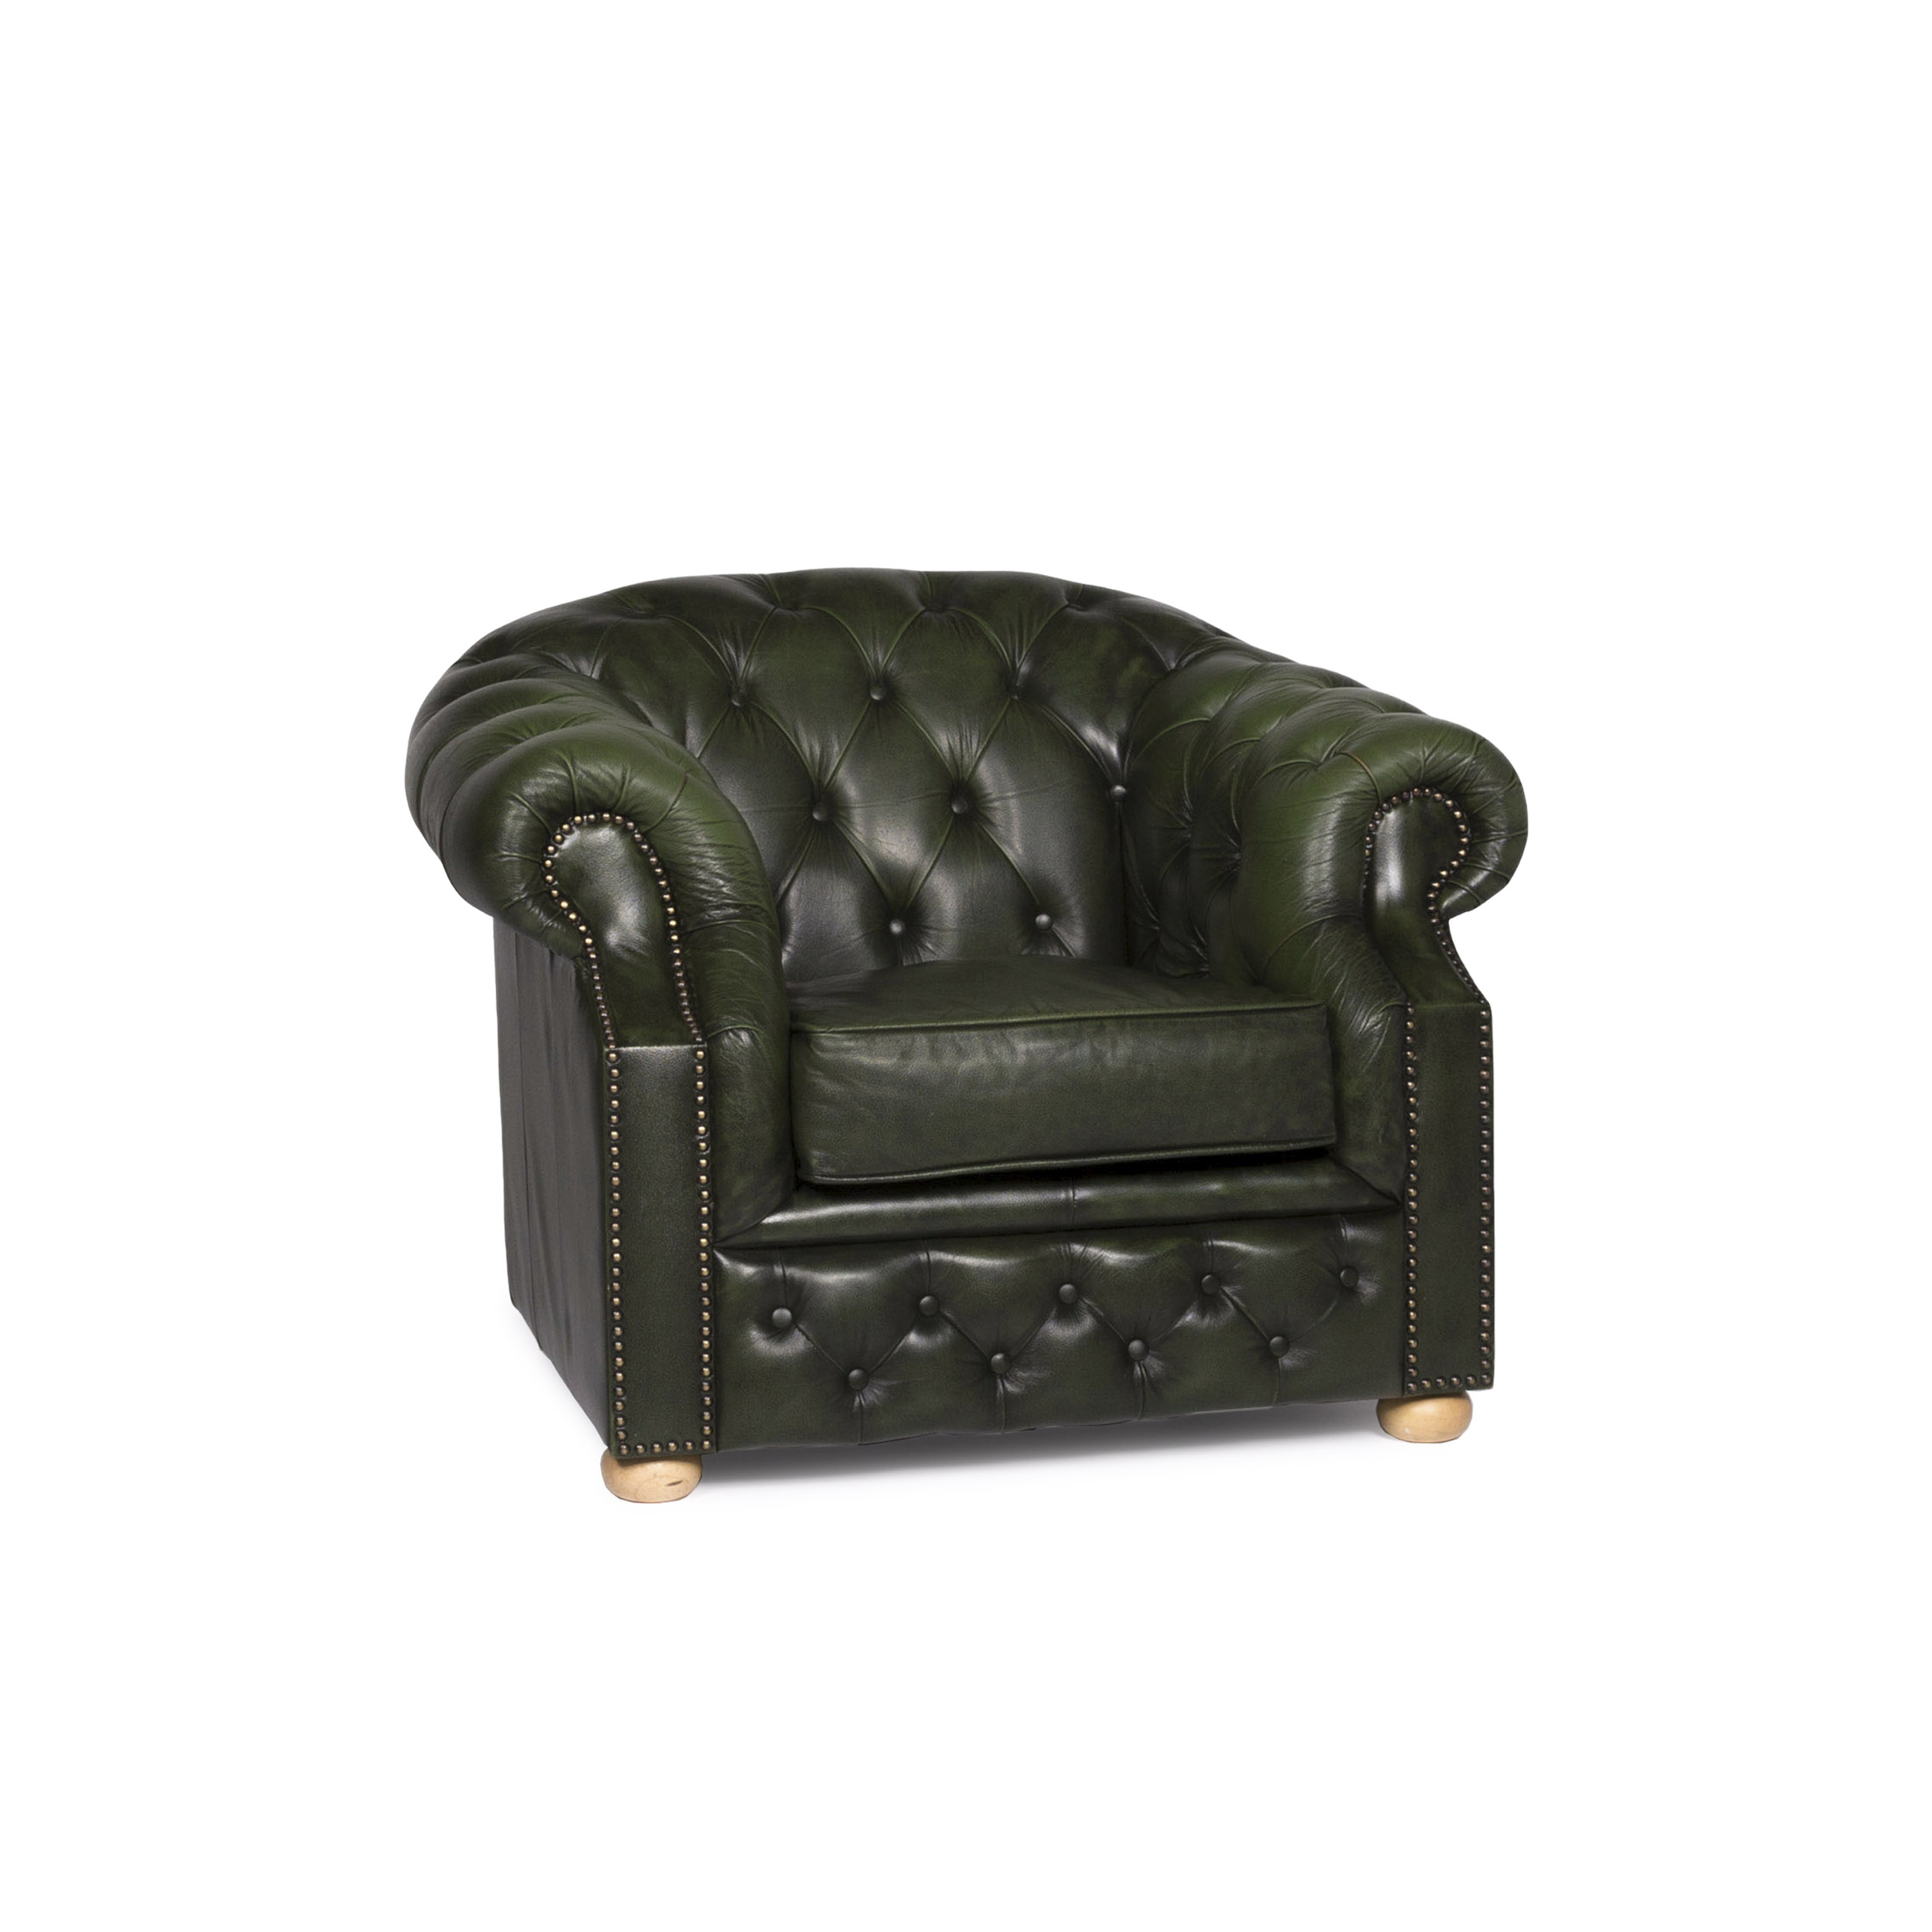 Chesterfield Suchergebnisse Revive Interior